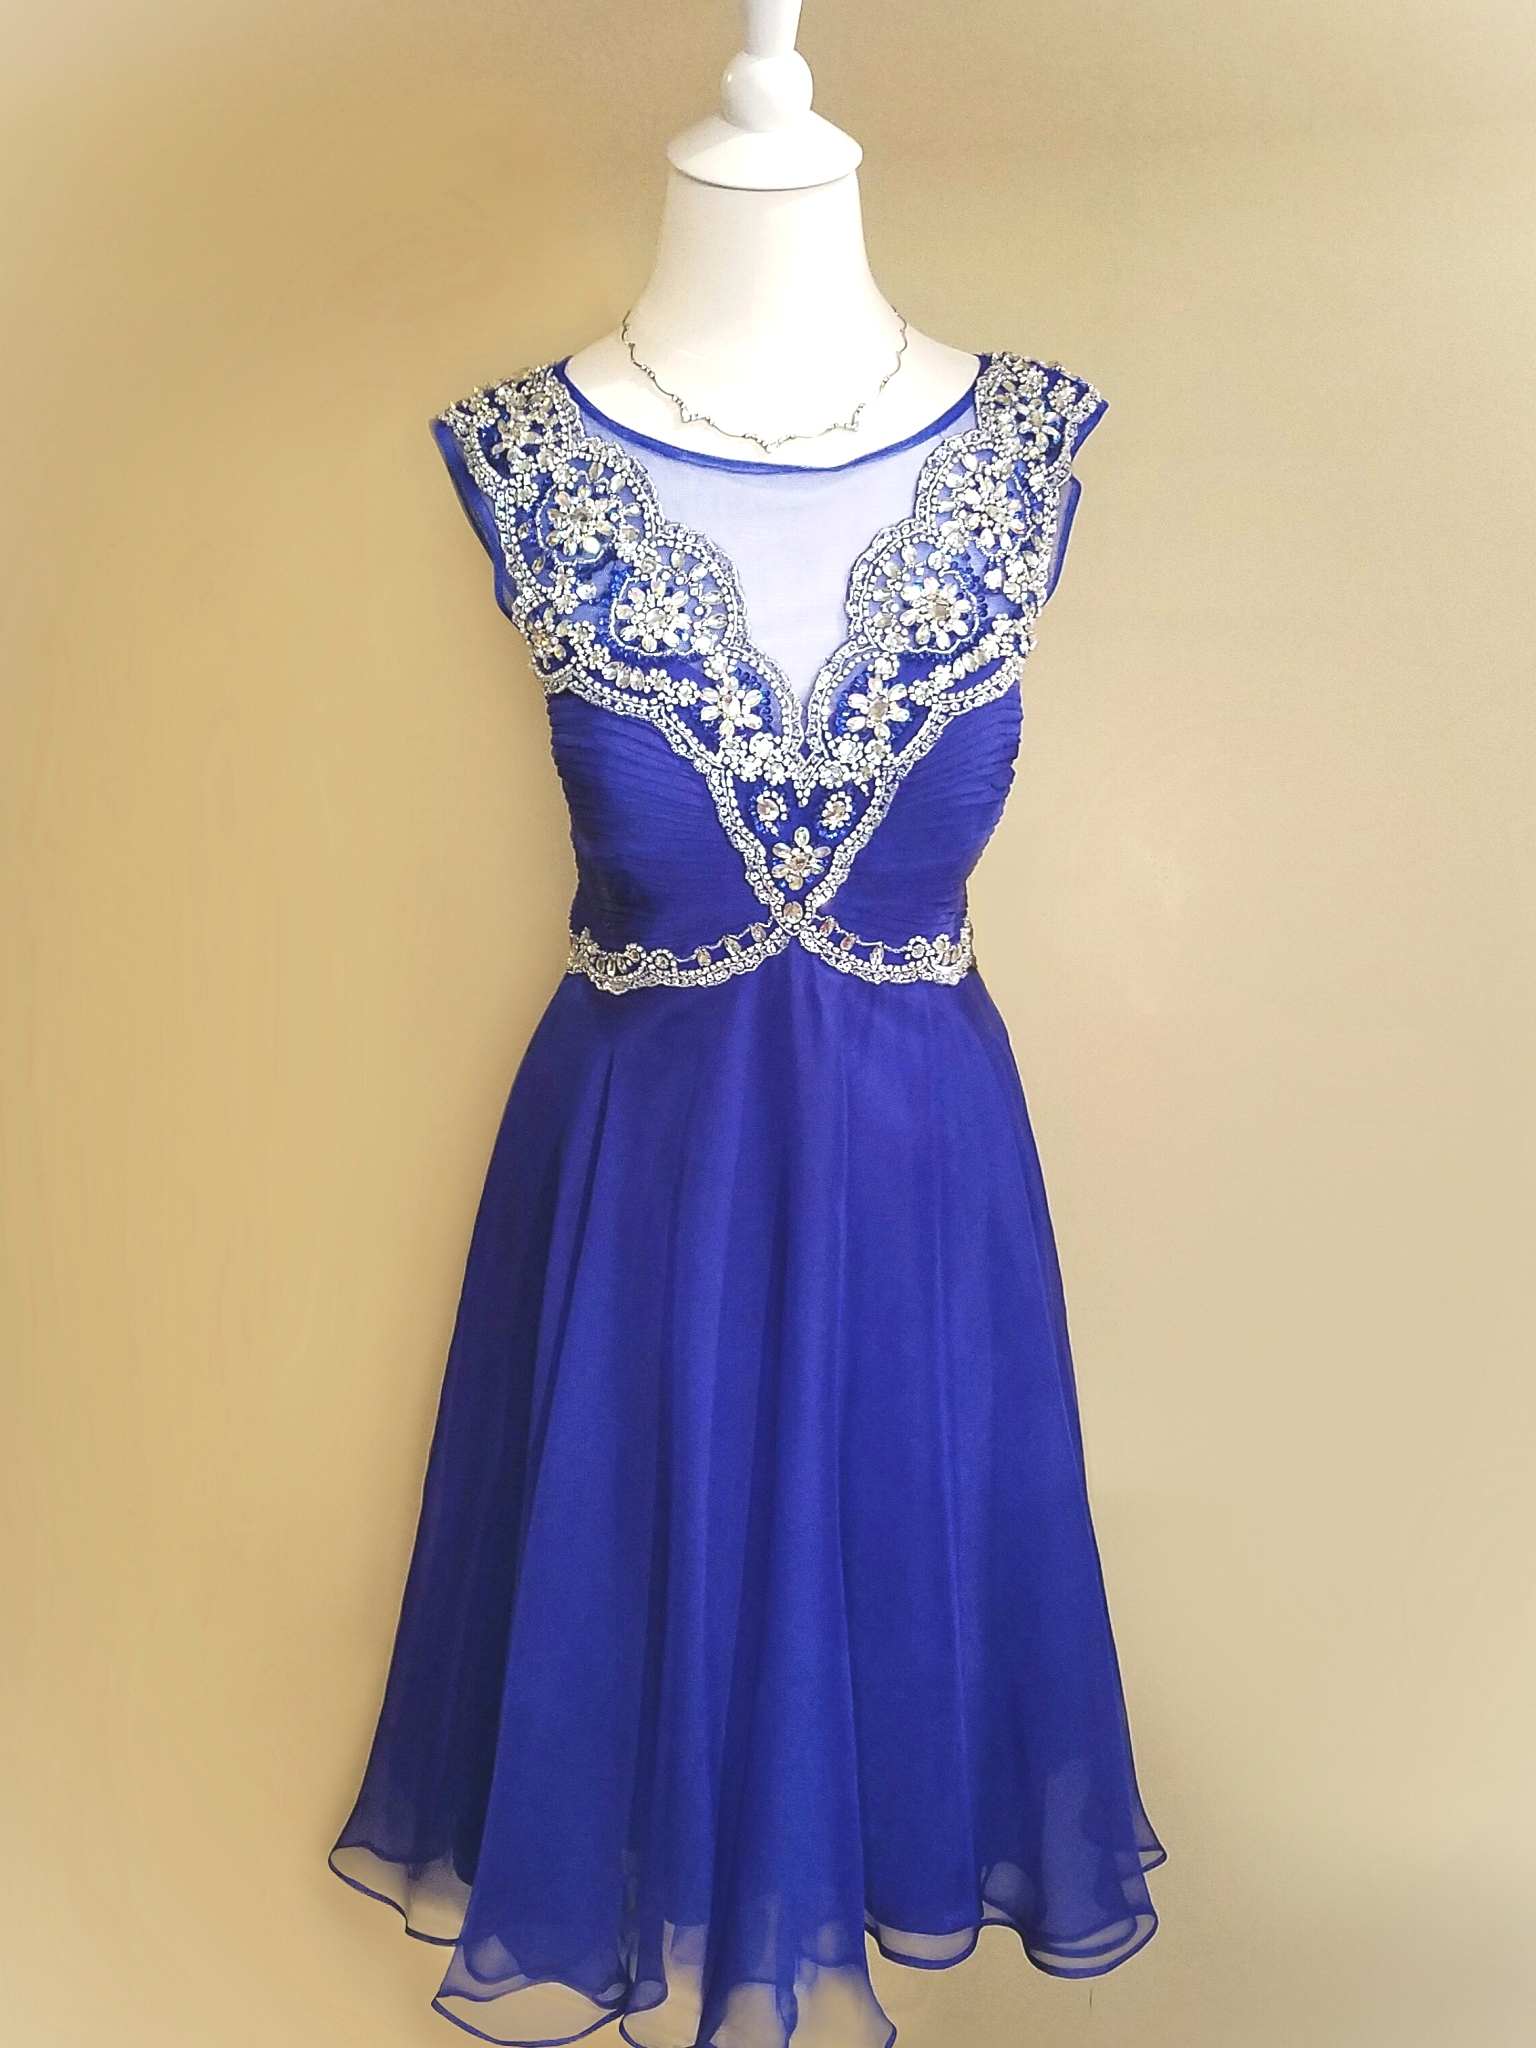 04-0301   Size 4